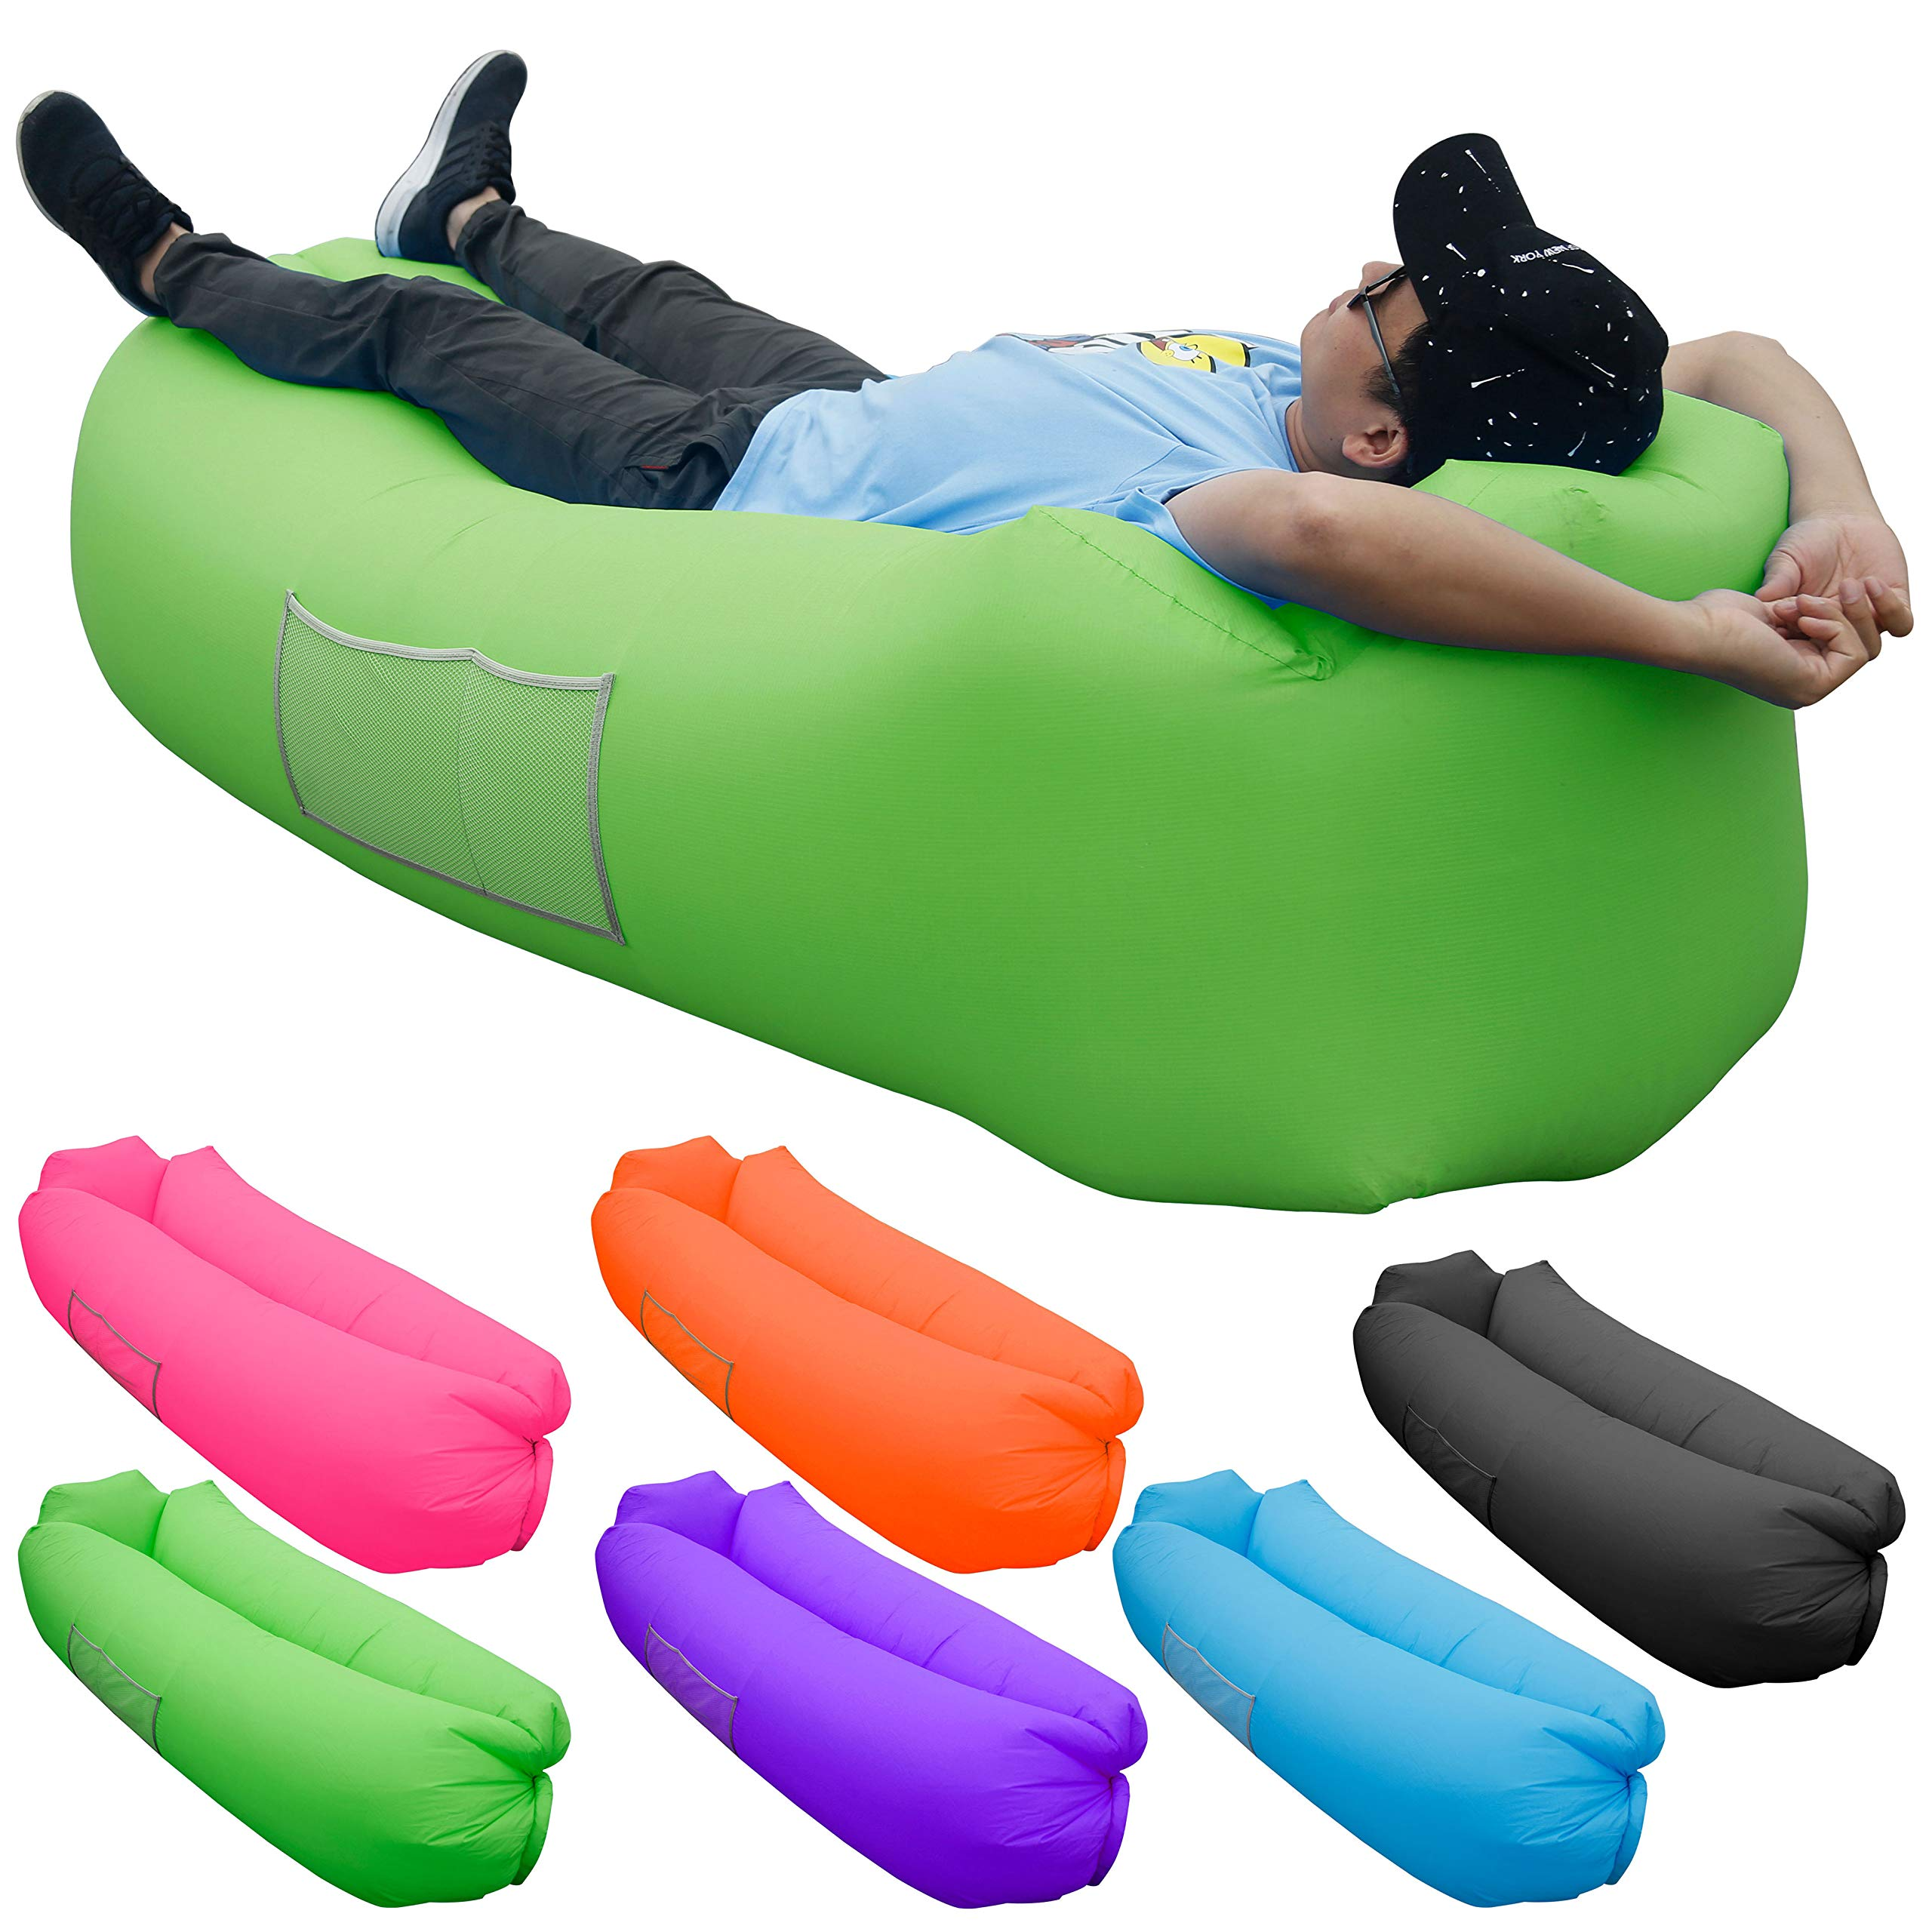 Skoloo Inflatable Lounger Air Sofa, Portable Water Proof Anti-Air Leaking & Pillow-Shaped Designed Couch for Backyard Pool Travel Camping Hiking Lakeside Picnics Music Festivals Beach Parties,Green by Skoloo